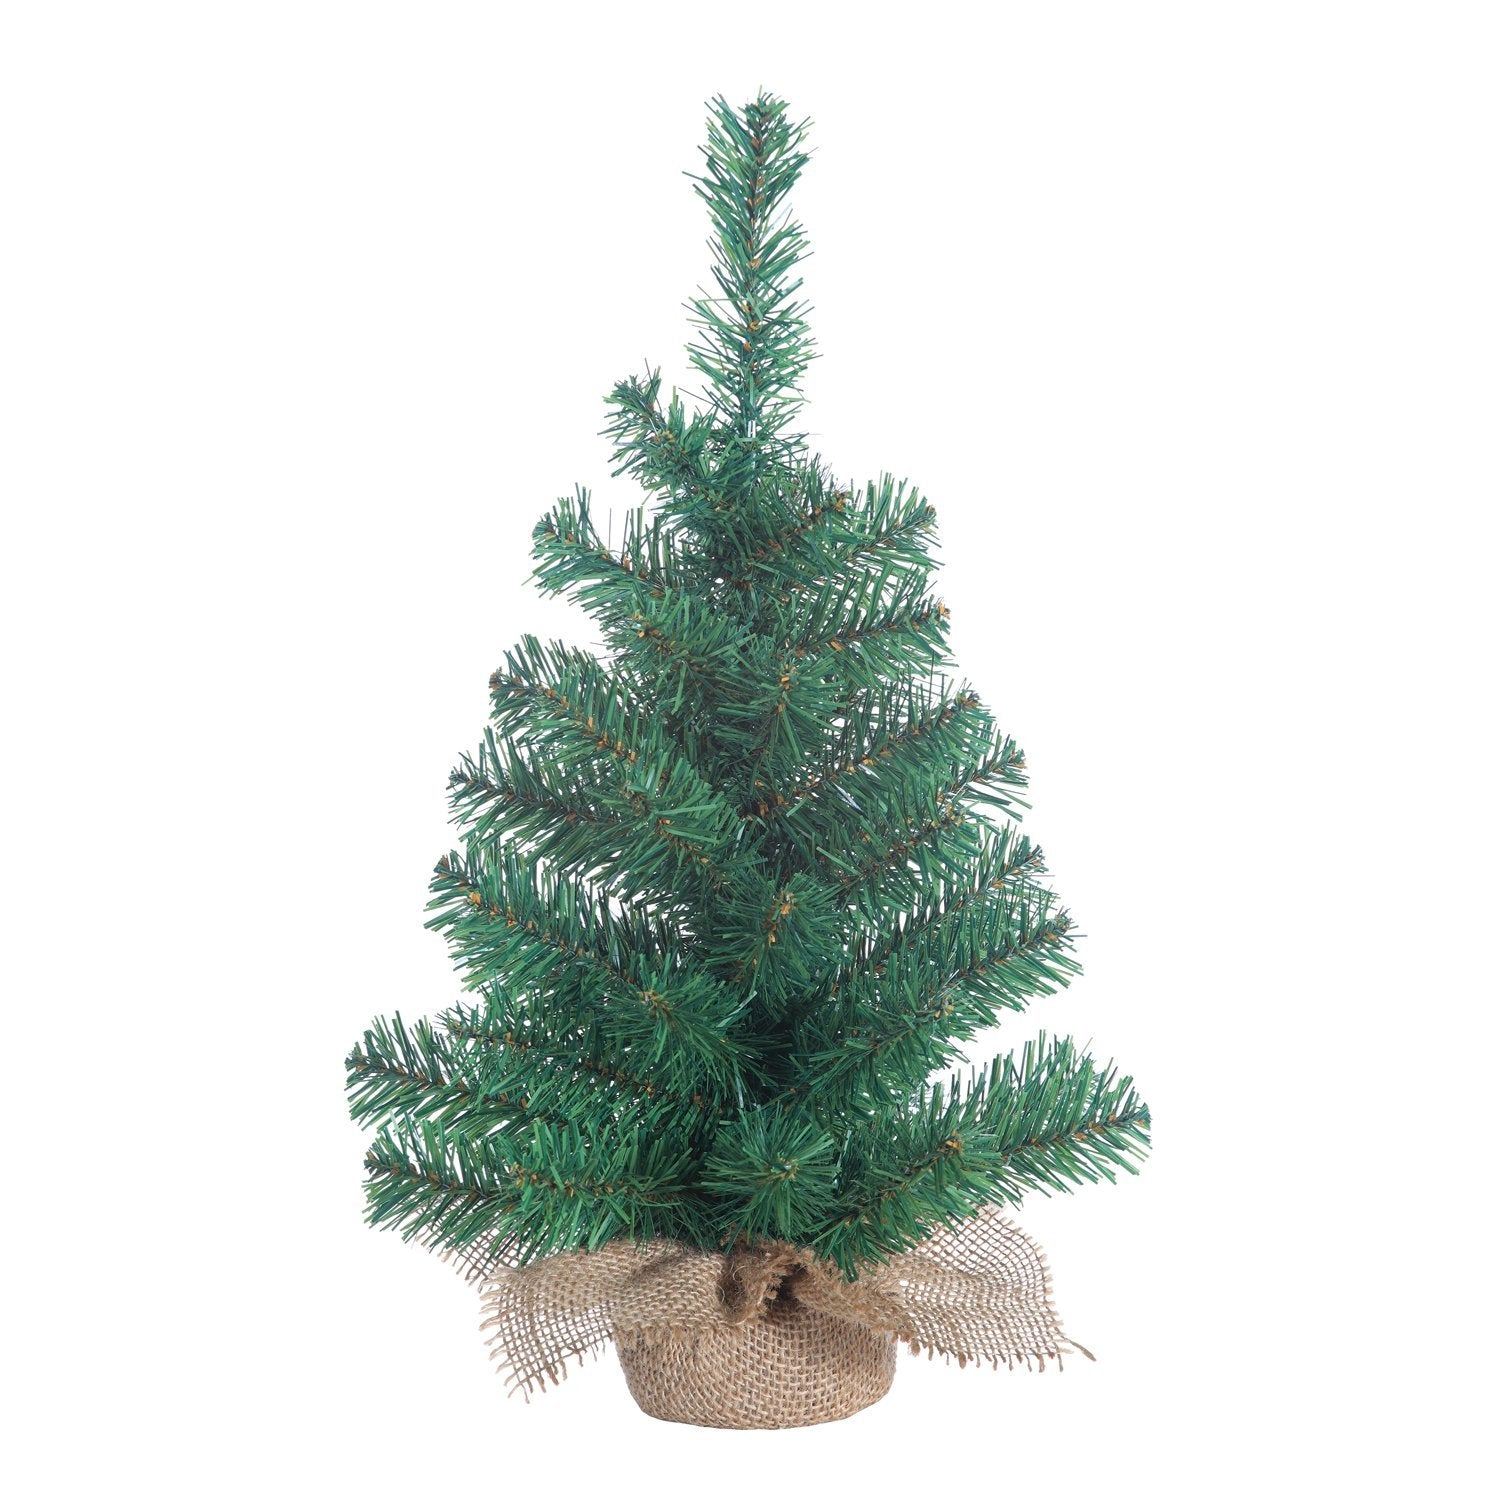 Artificial Christmas Tree Branches.Small Christmas Tree Indoor Gerson Tabletop 18 Inch Pine Tree With Burlap Base Miniature Artificial Green With Lots Of Branches For Decorations And